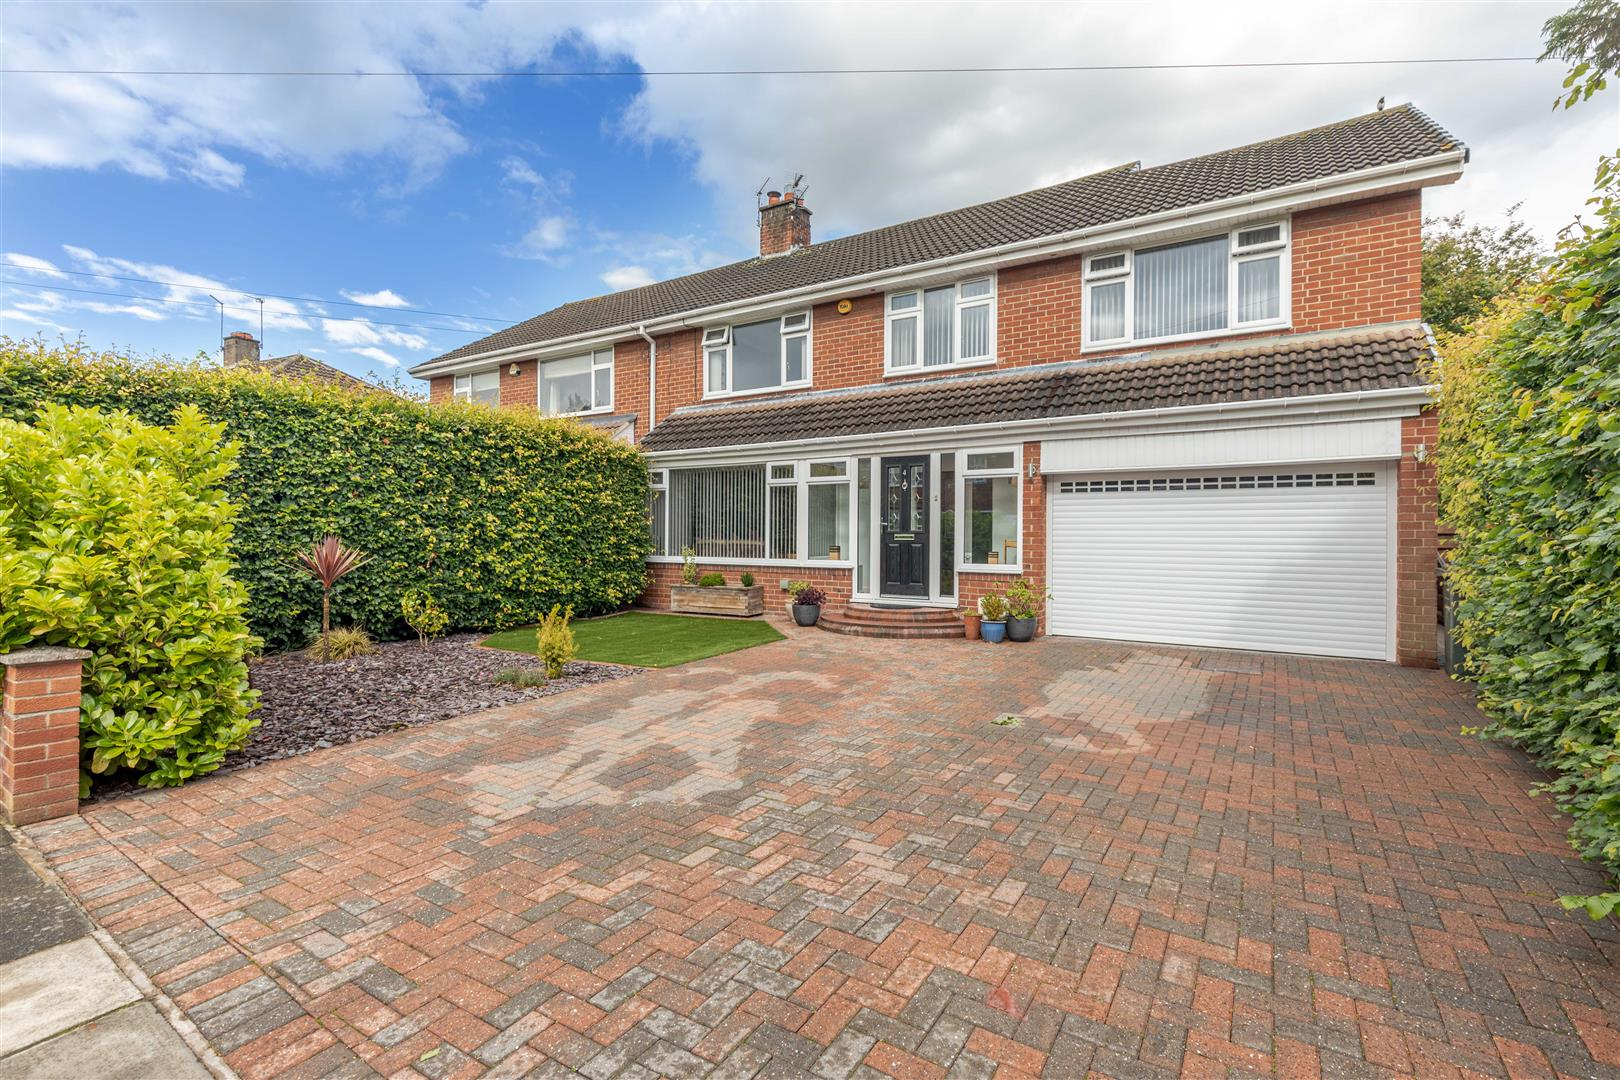 4 bed semi-detached house for sale in Melton Park, NE3 5TB, NE3